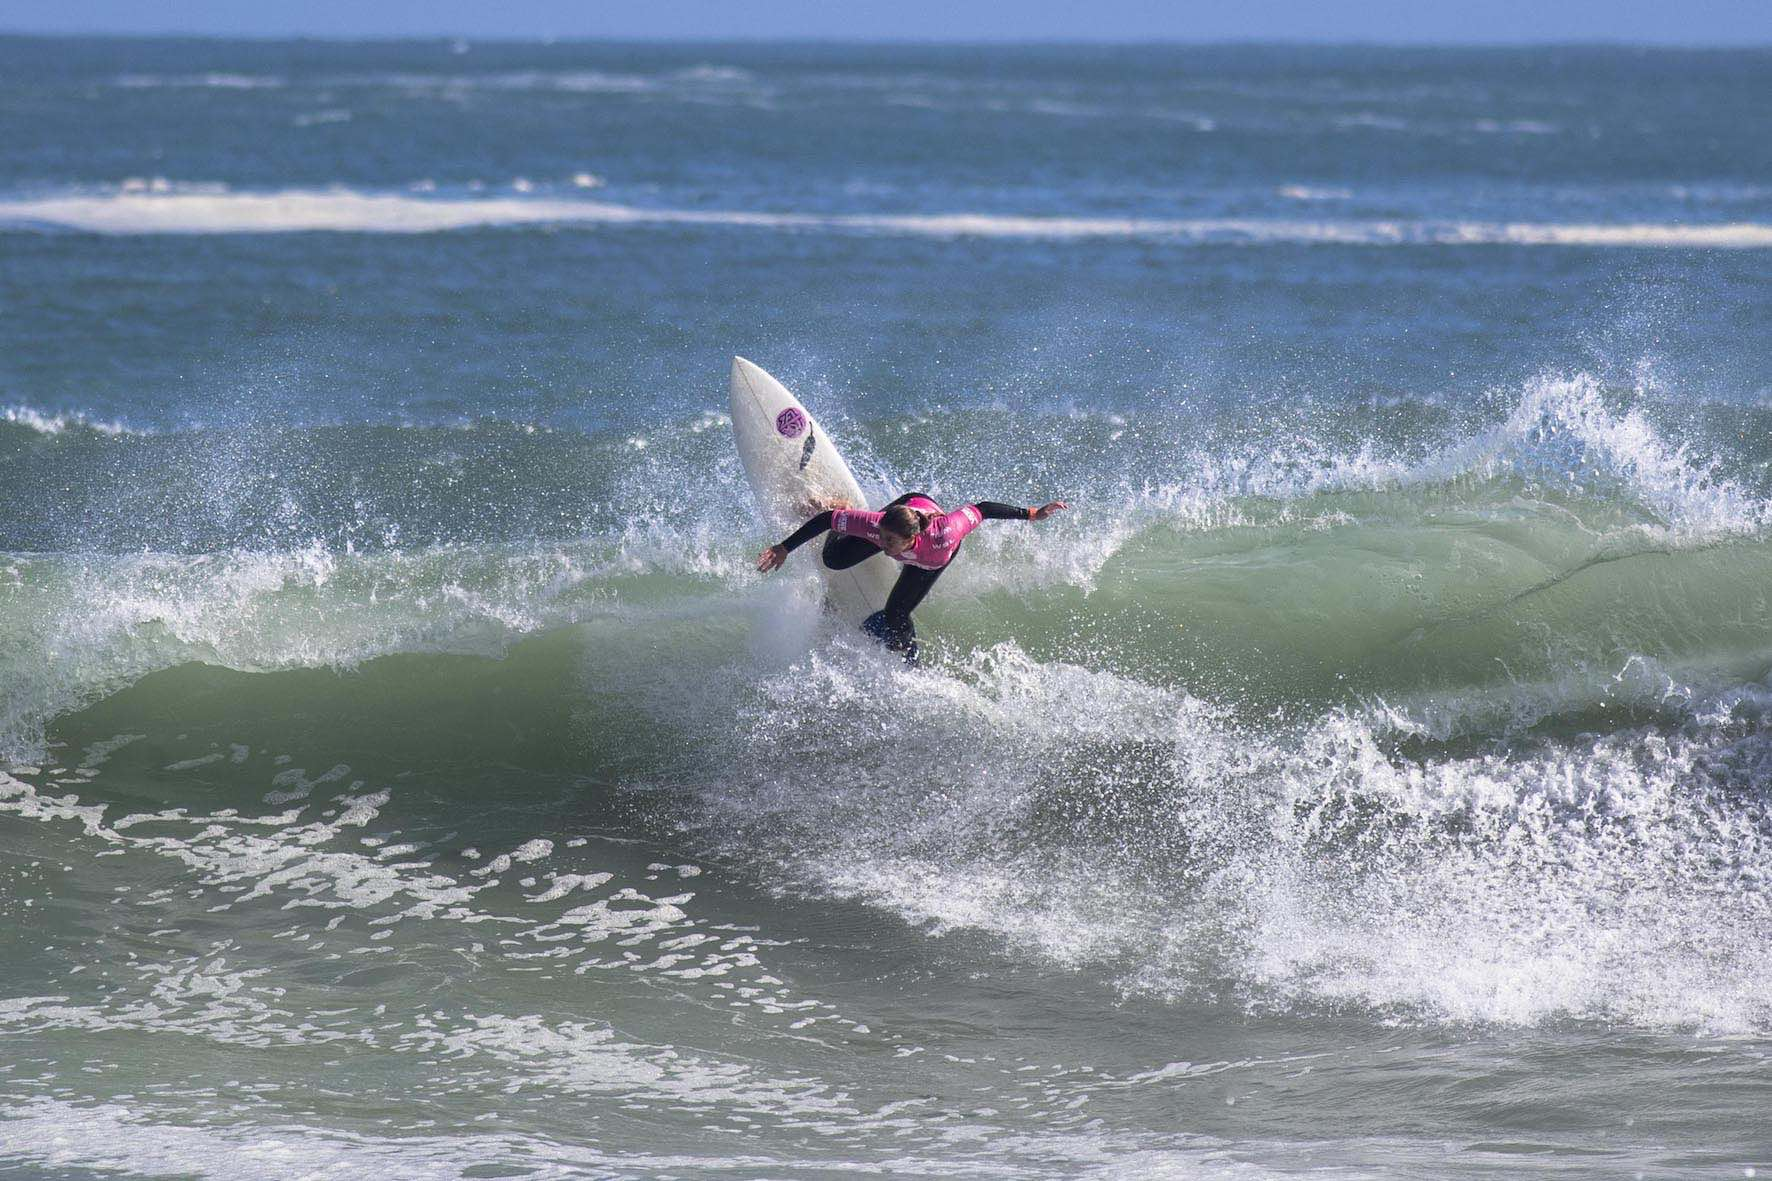 Cannelle Bulard surfing her way to victory at the 2018 Vans Surf Pro Classic